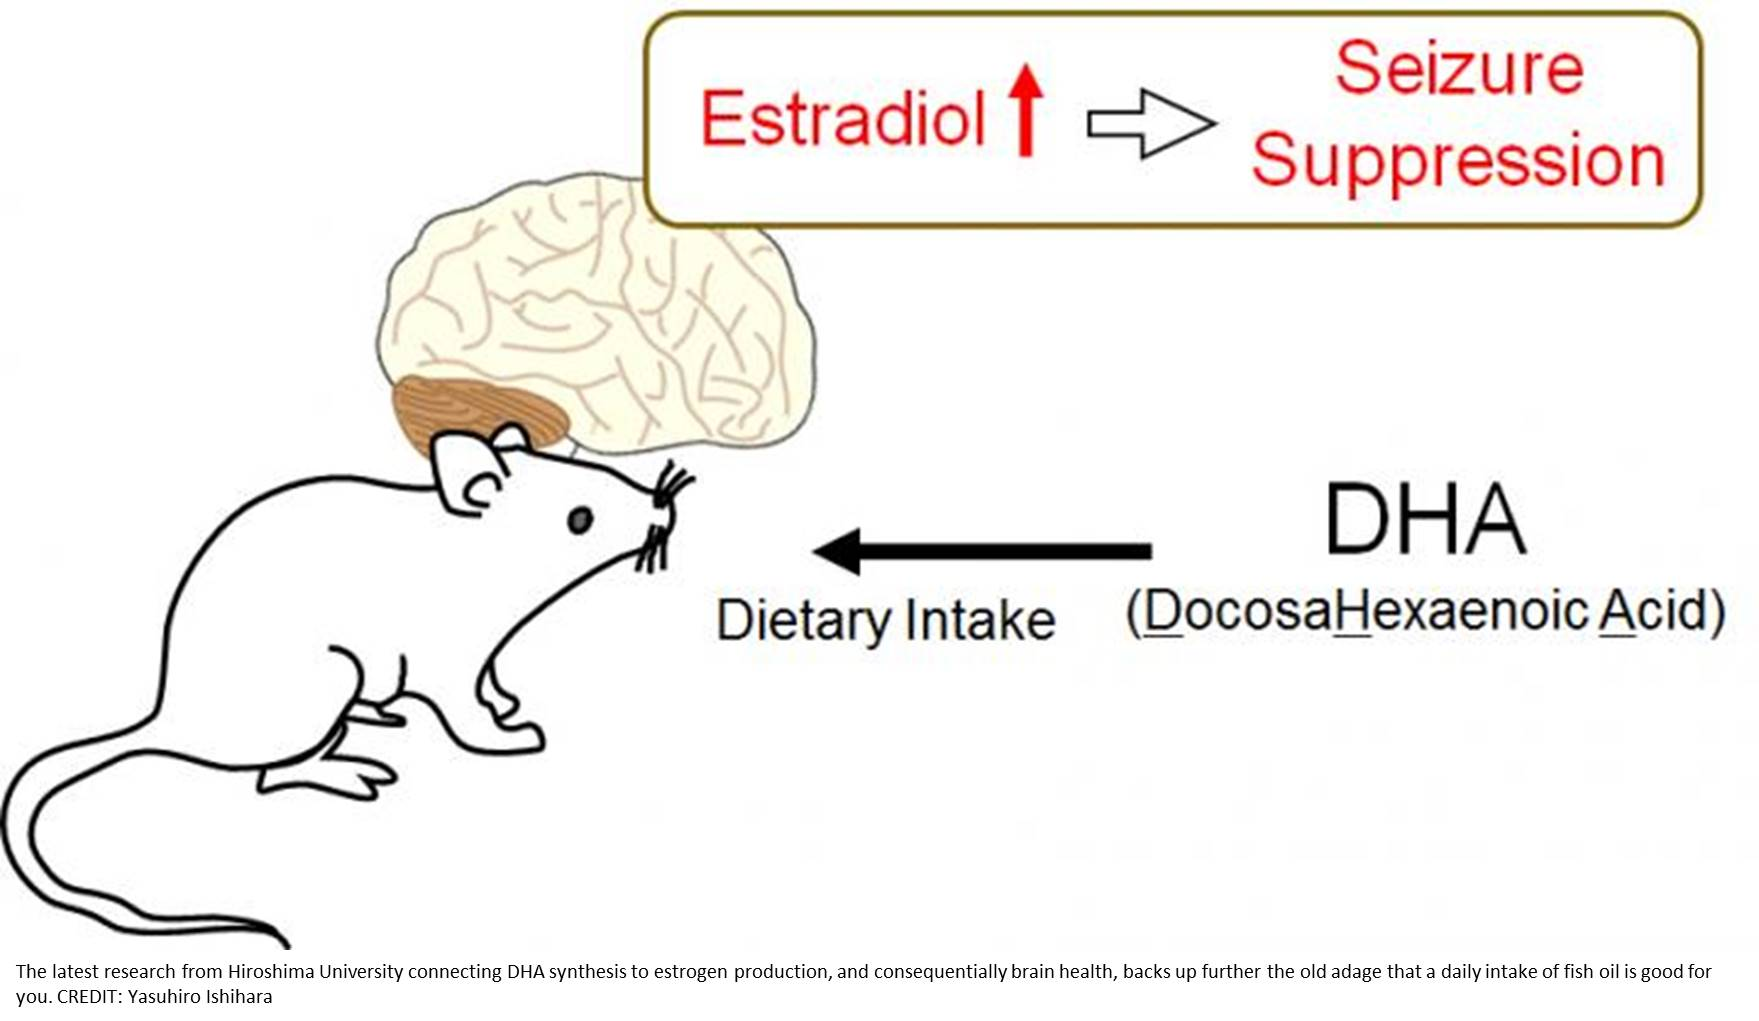 Fattyacids from oil reduces seizure occurrence!